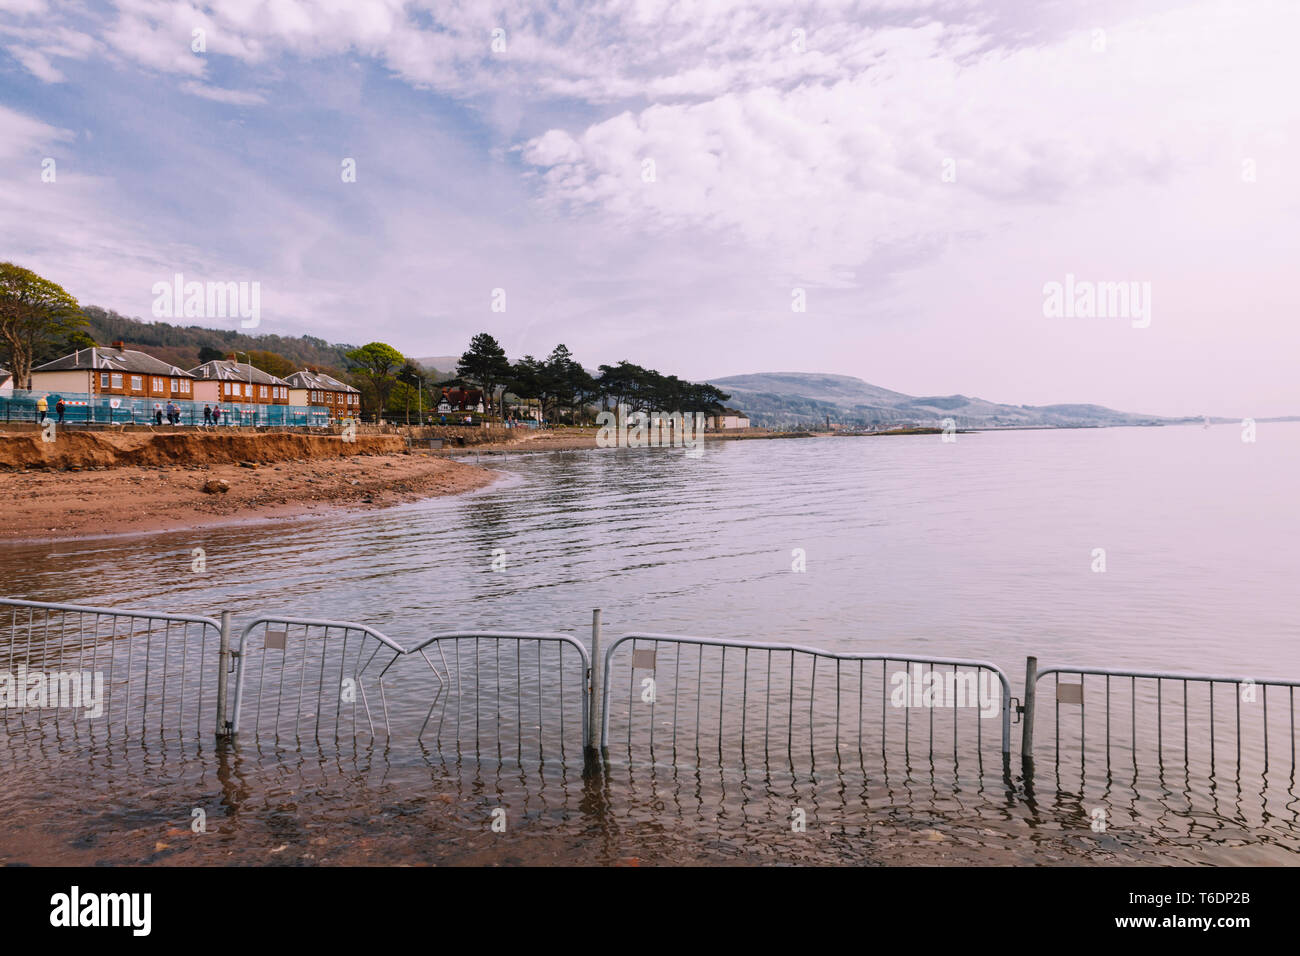 Fairlie Village to Largs Town Coastline Scotland 3 - Stock Image